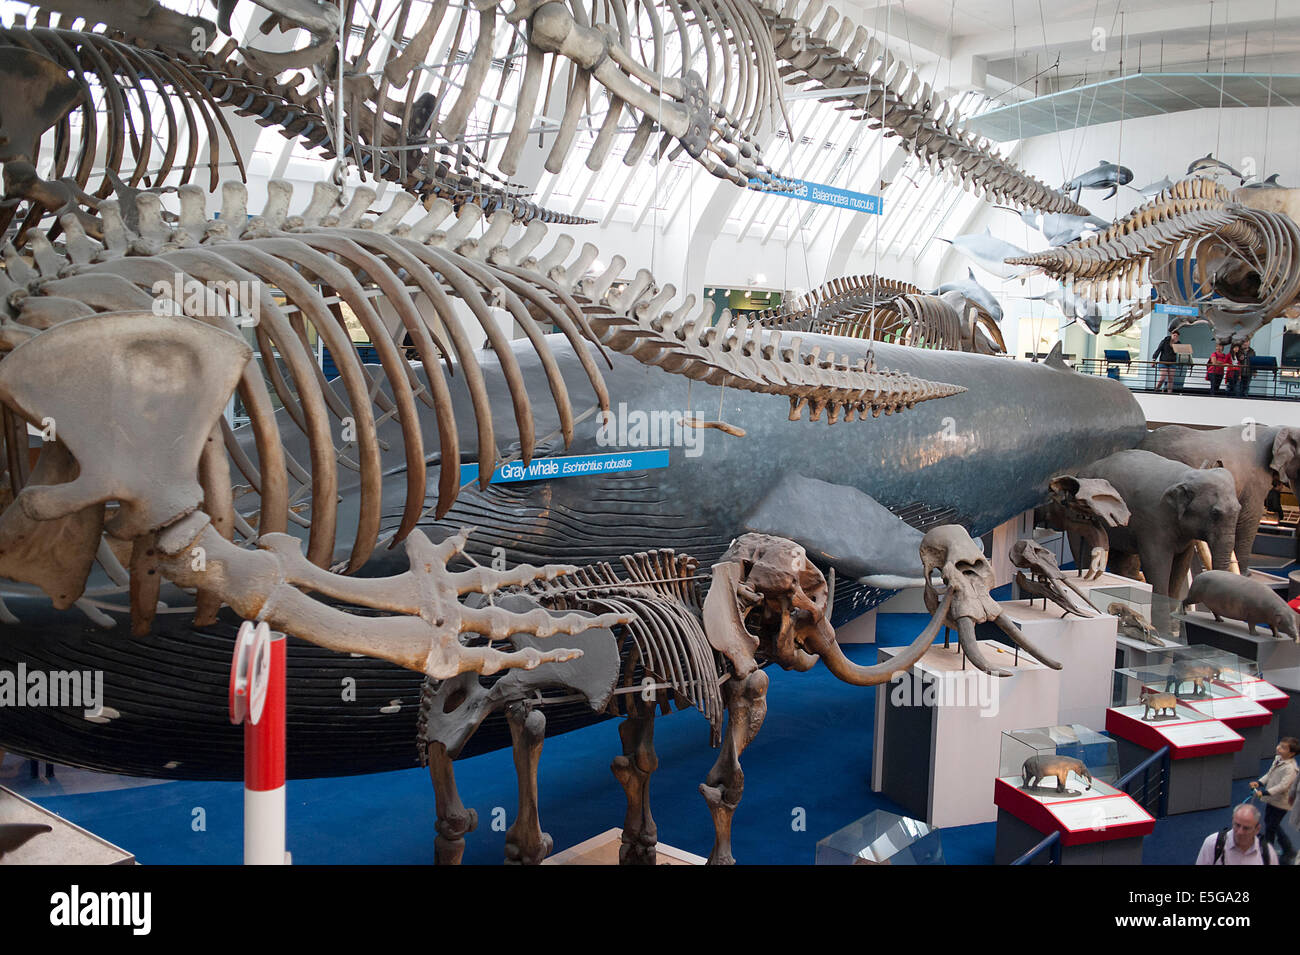 Mammals room of the London Natural History Museum, GB - Stock Image